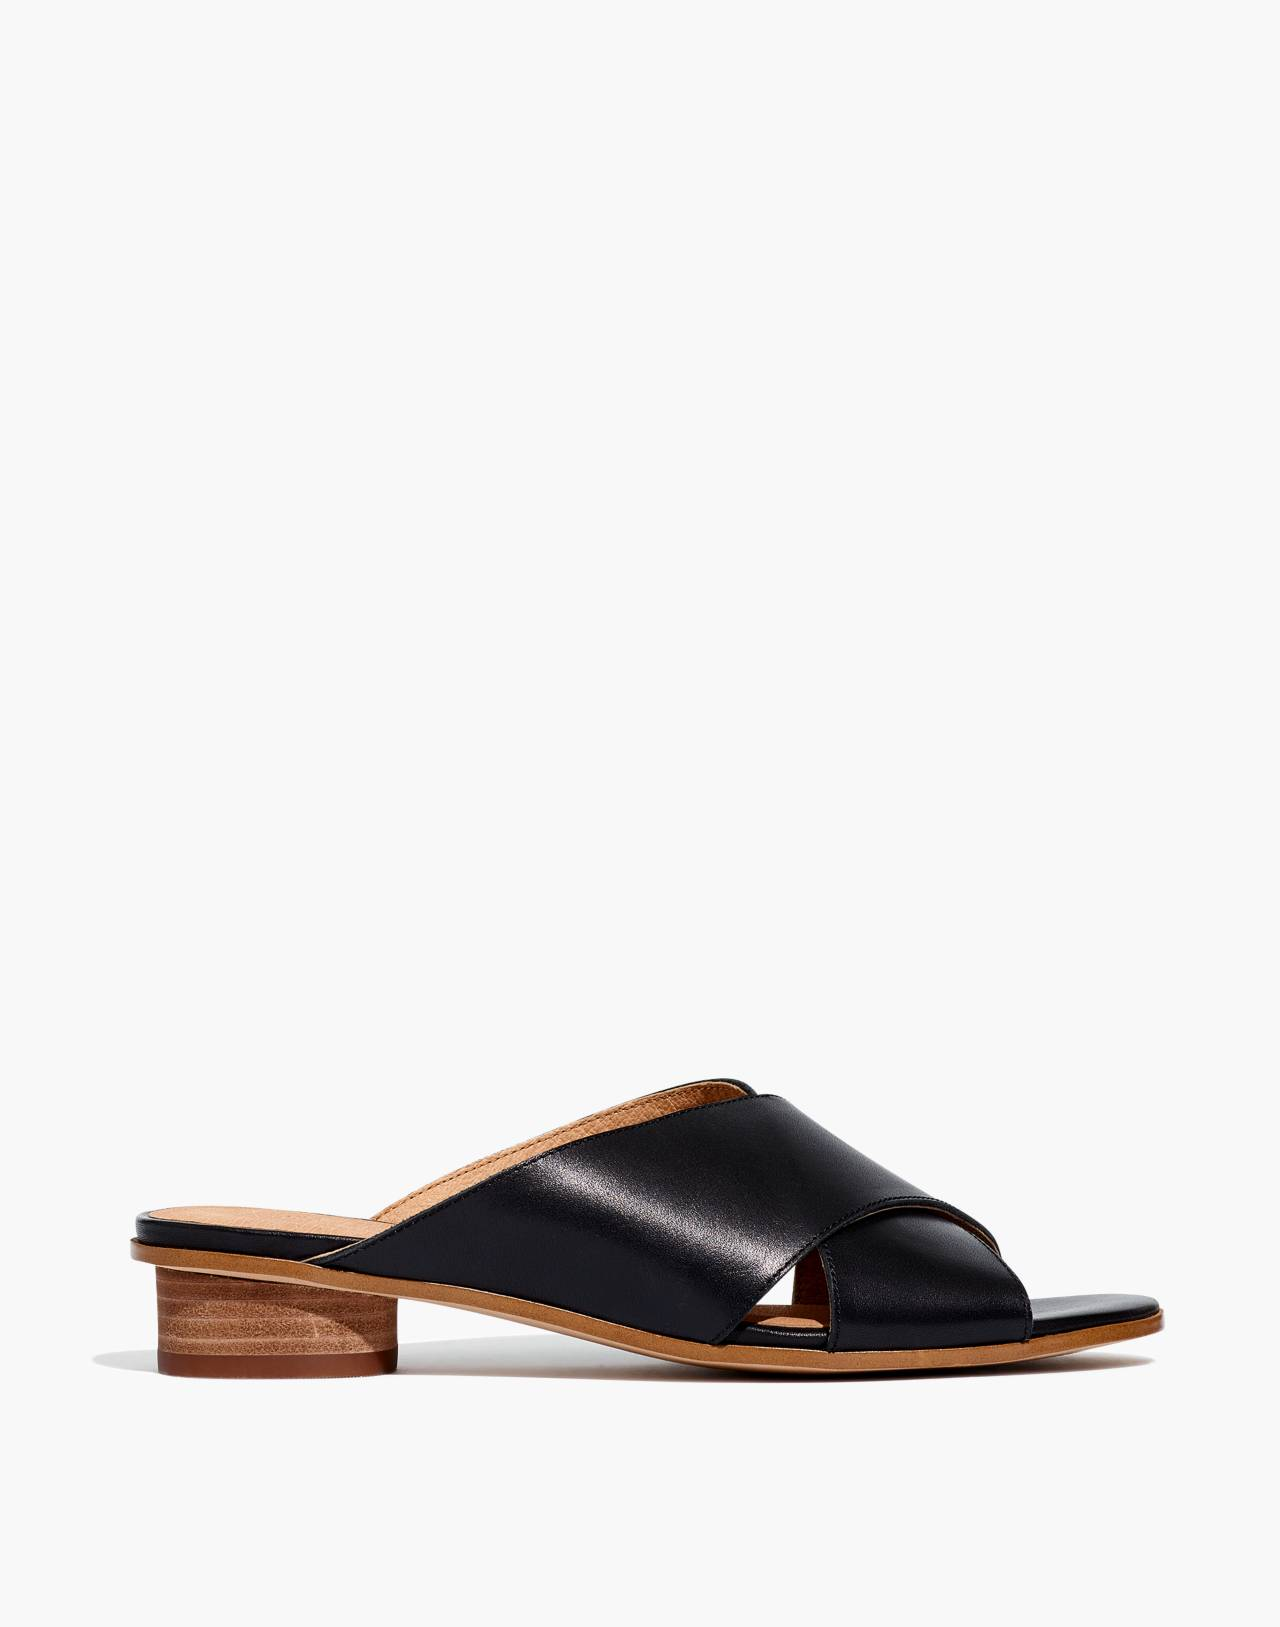 The Ruthie Crisscross Mule in Leather in true black image 2